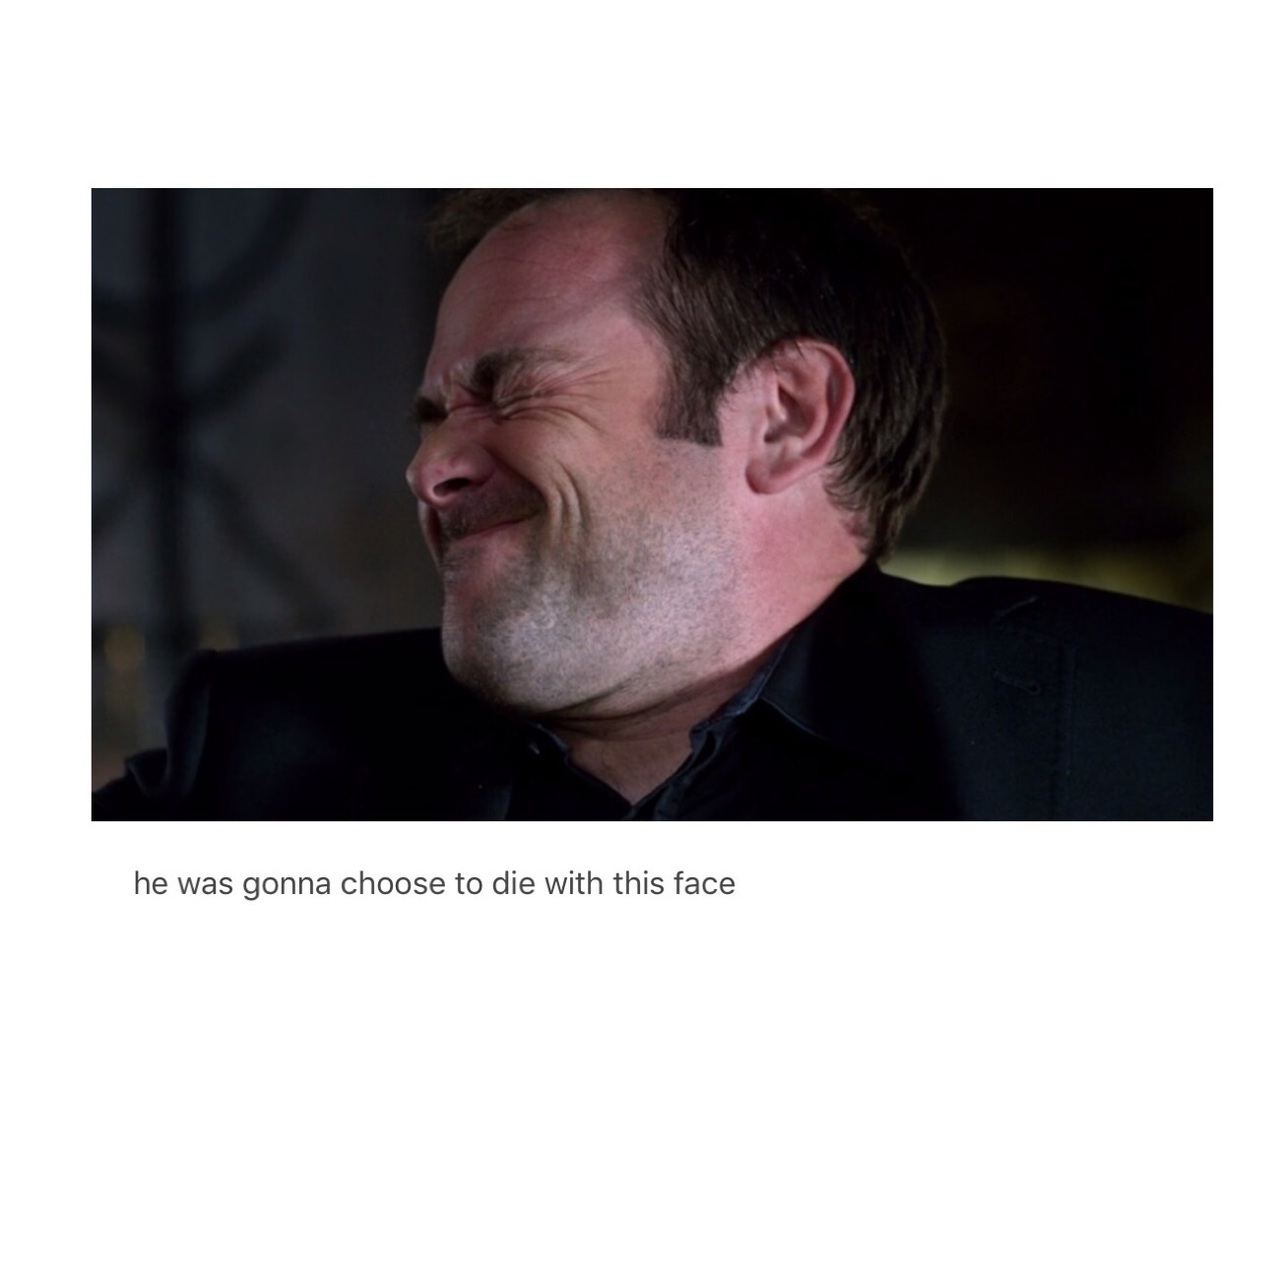 crowley, spn, supernatural, tumblr - image #4642258 by Sharleen on